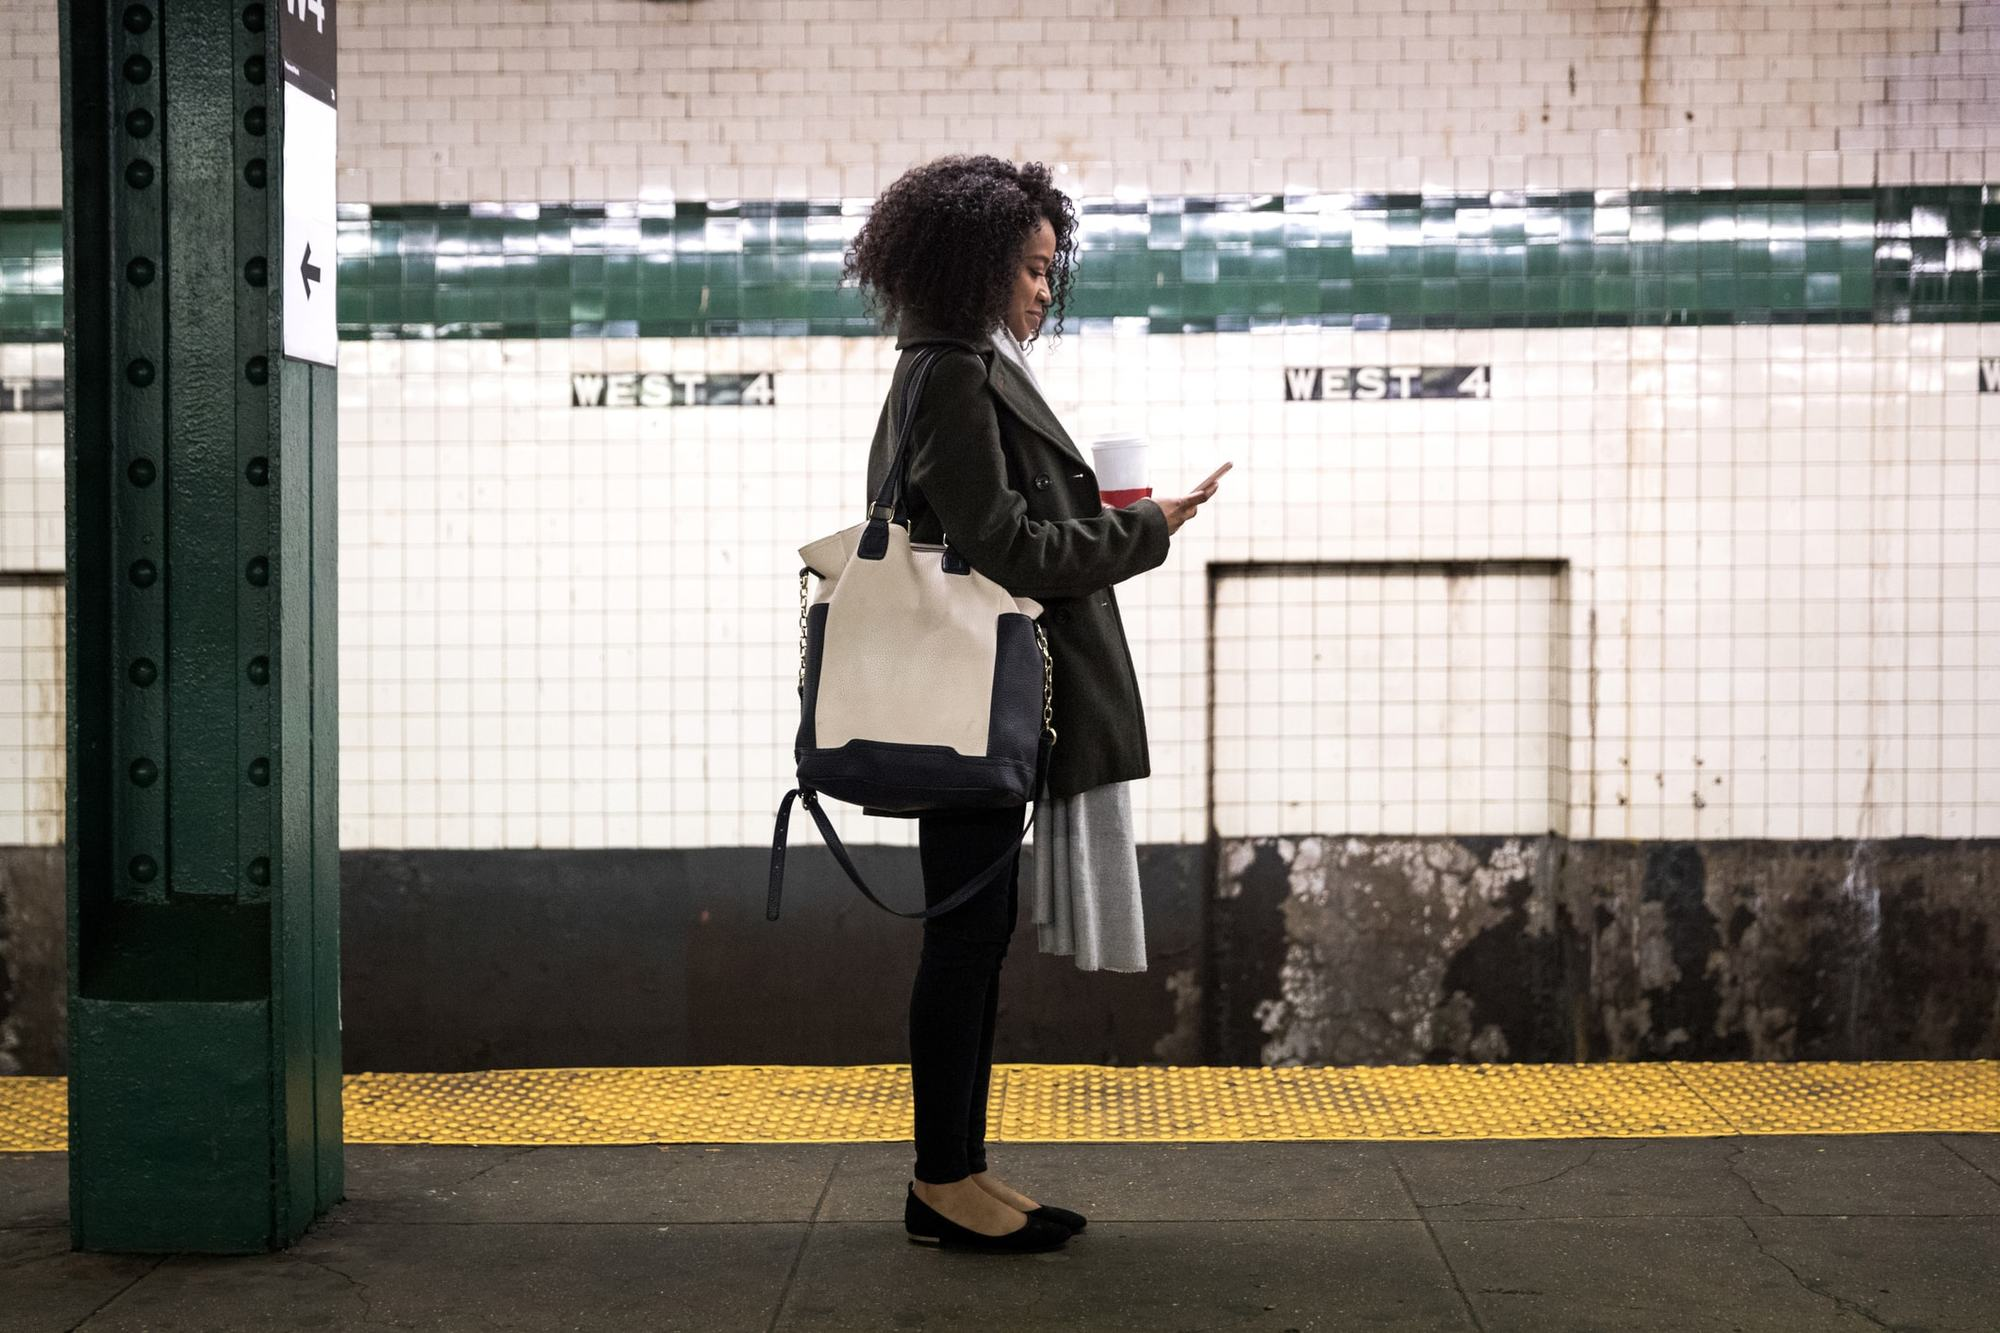 salvage your hair morning commute natural curly hair